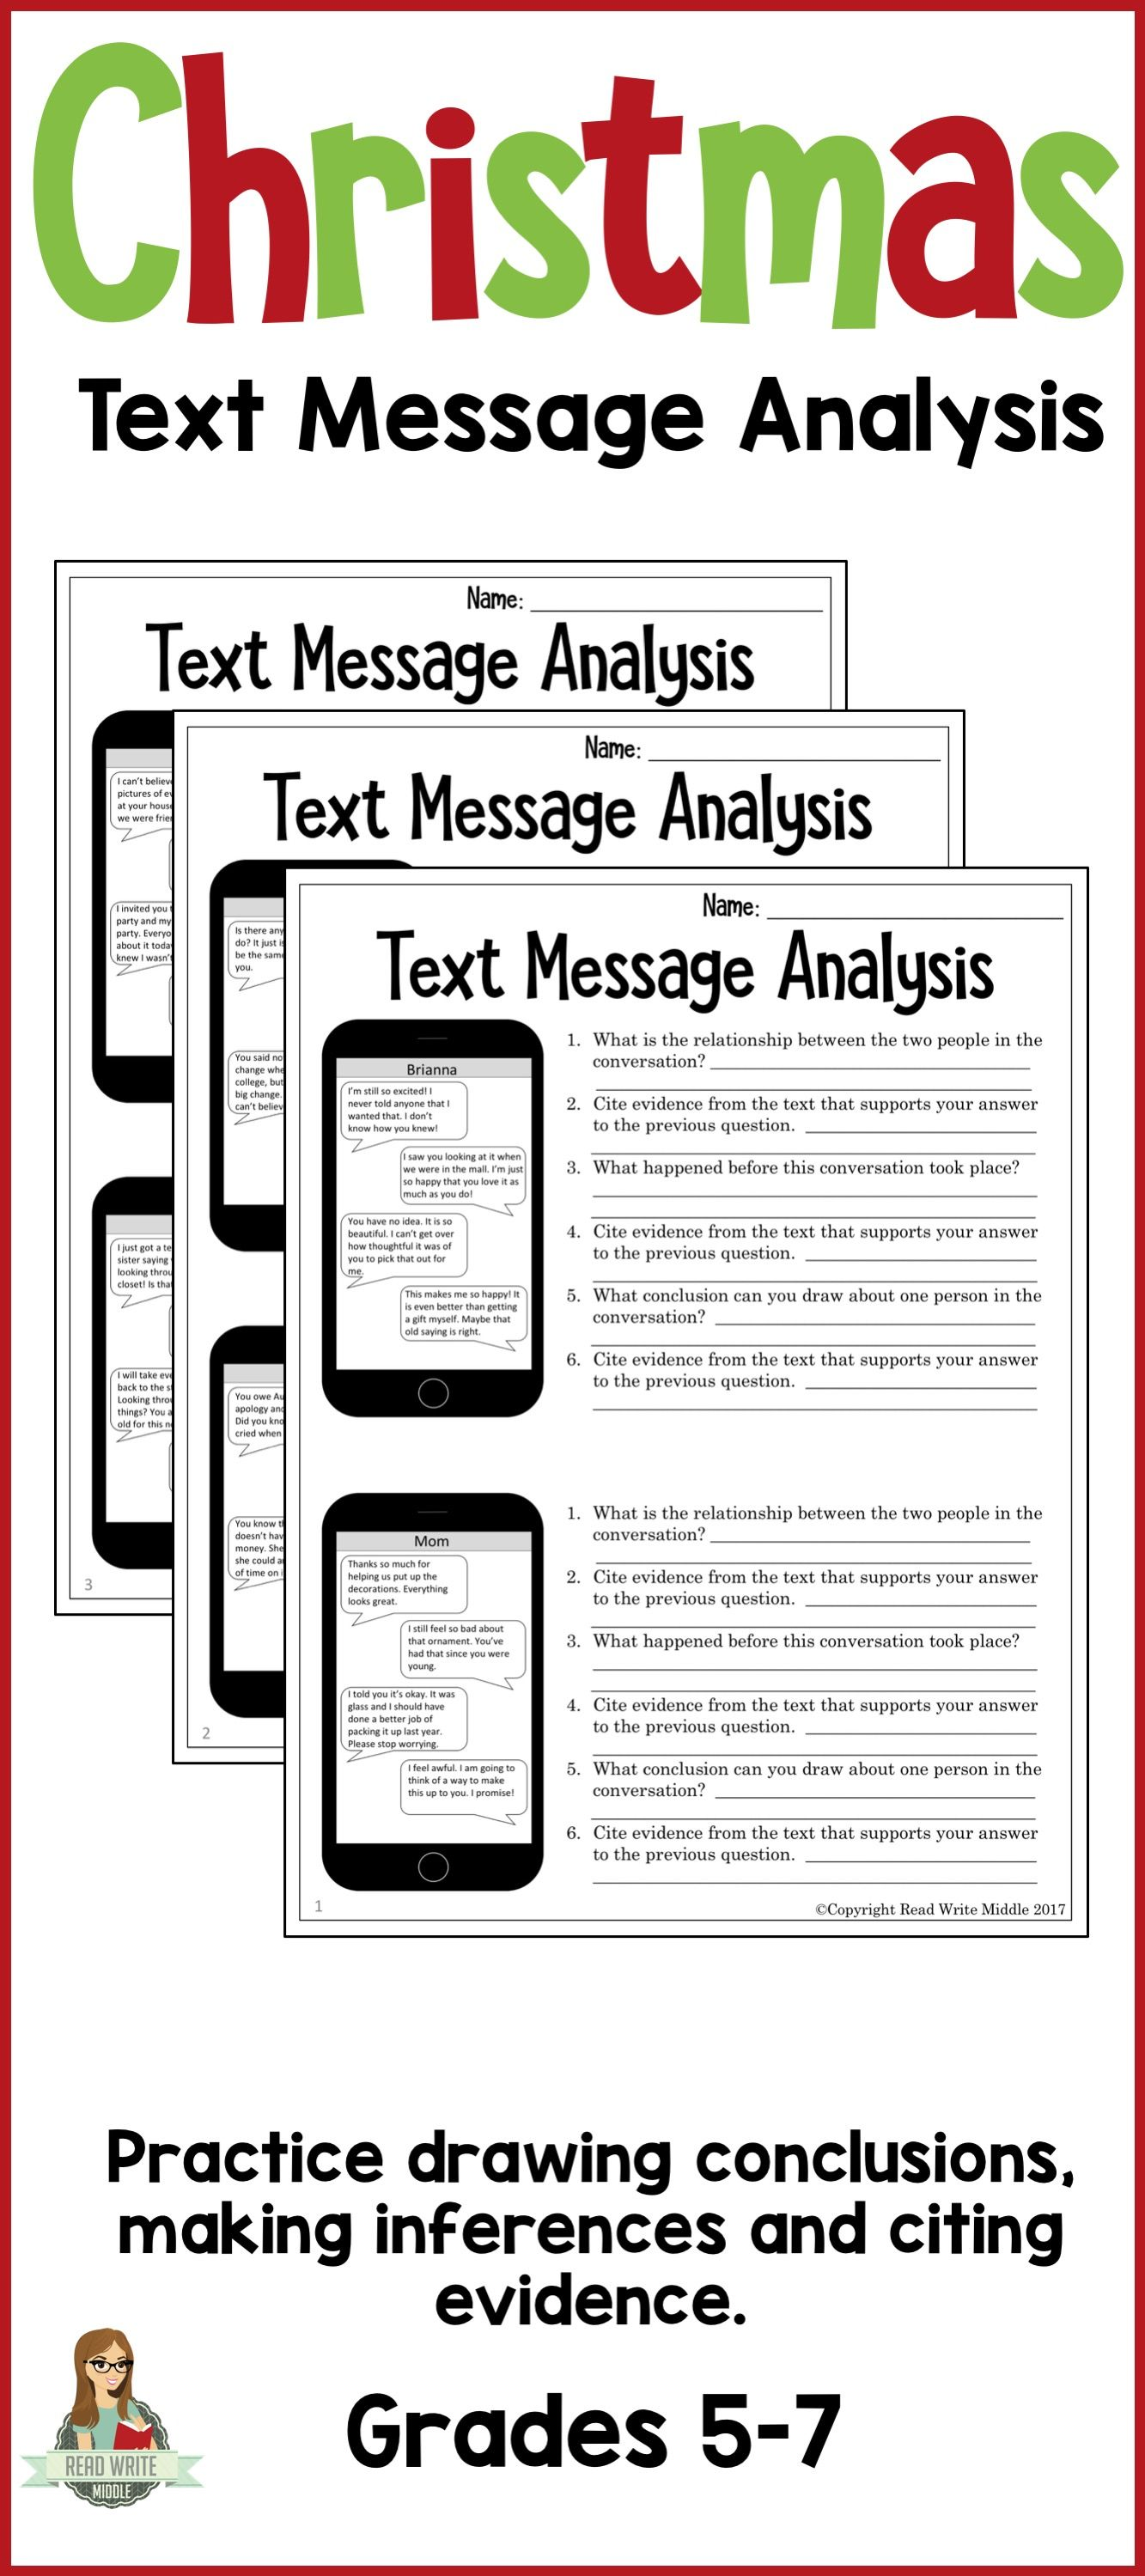 worksheet Citing Evidence Worksheet christmas text message analysis inferencing and citing evidence evidence